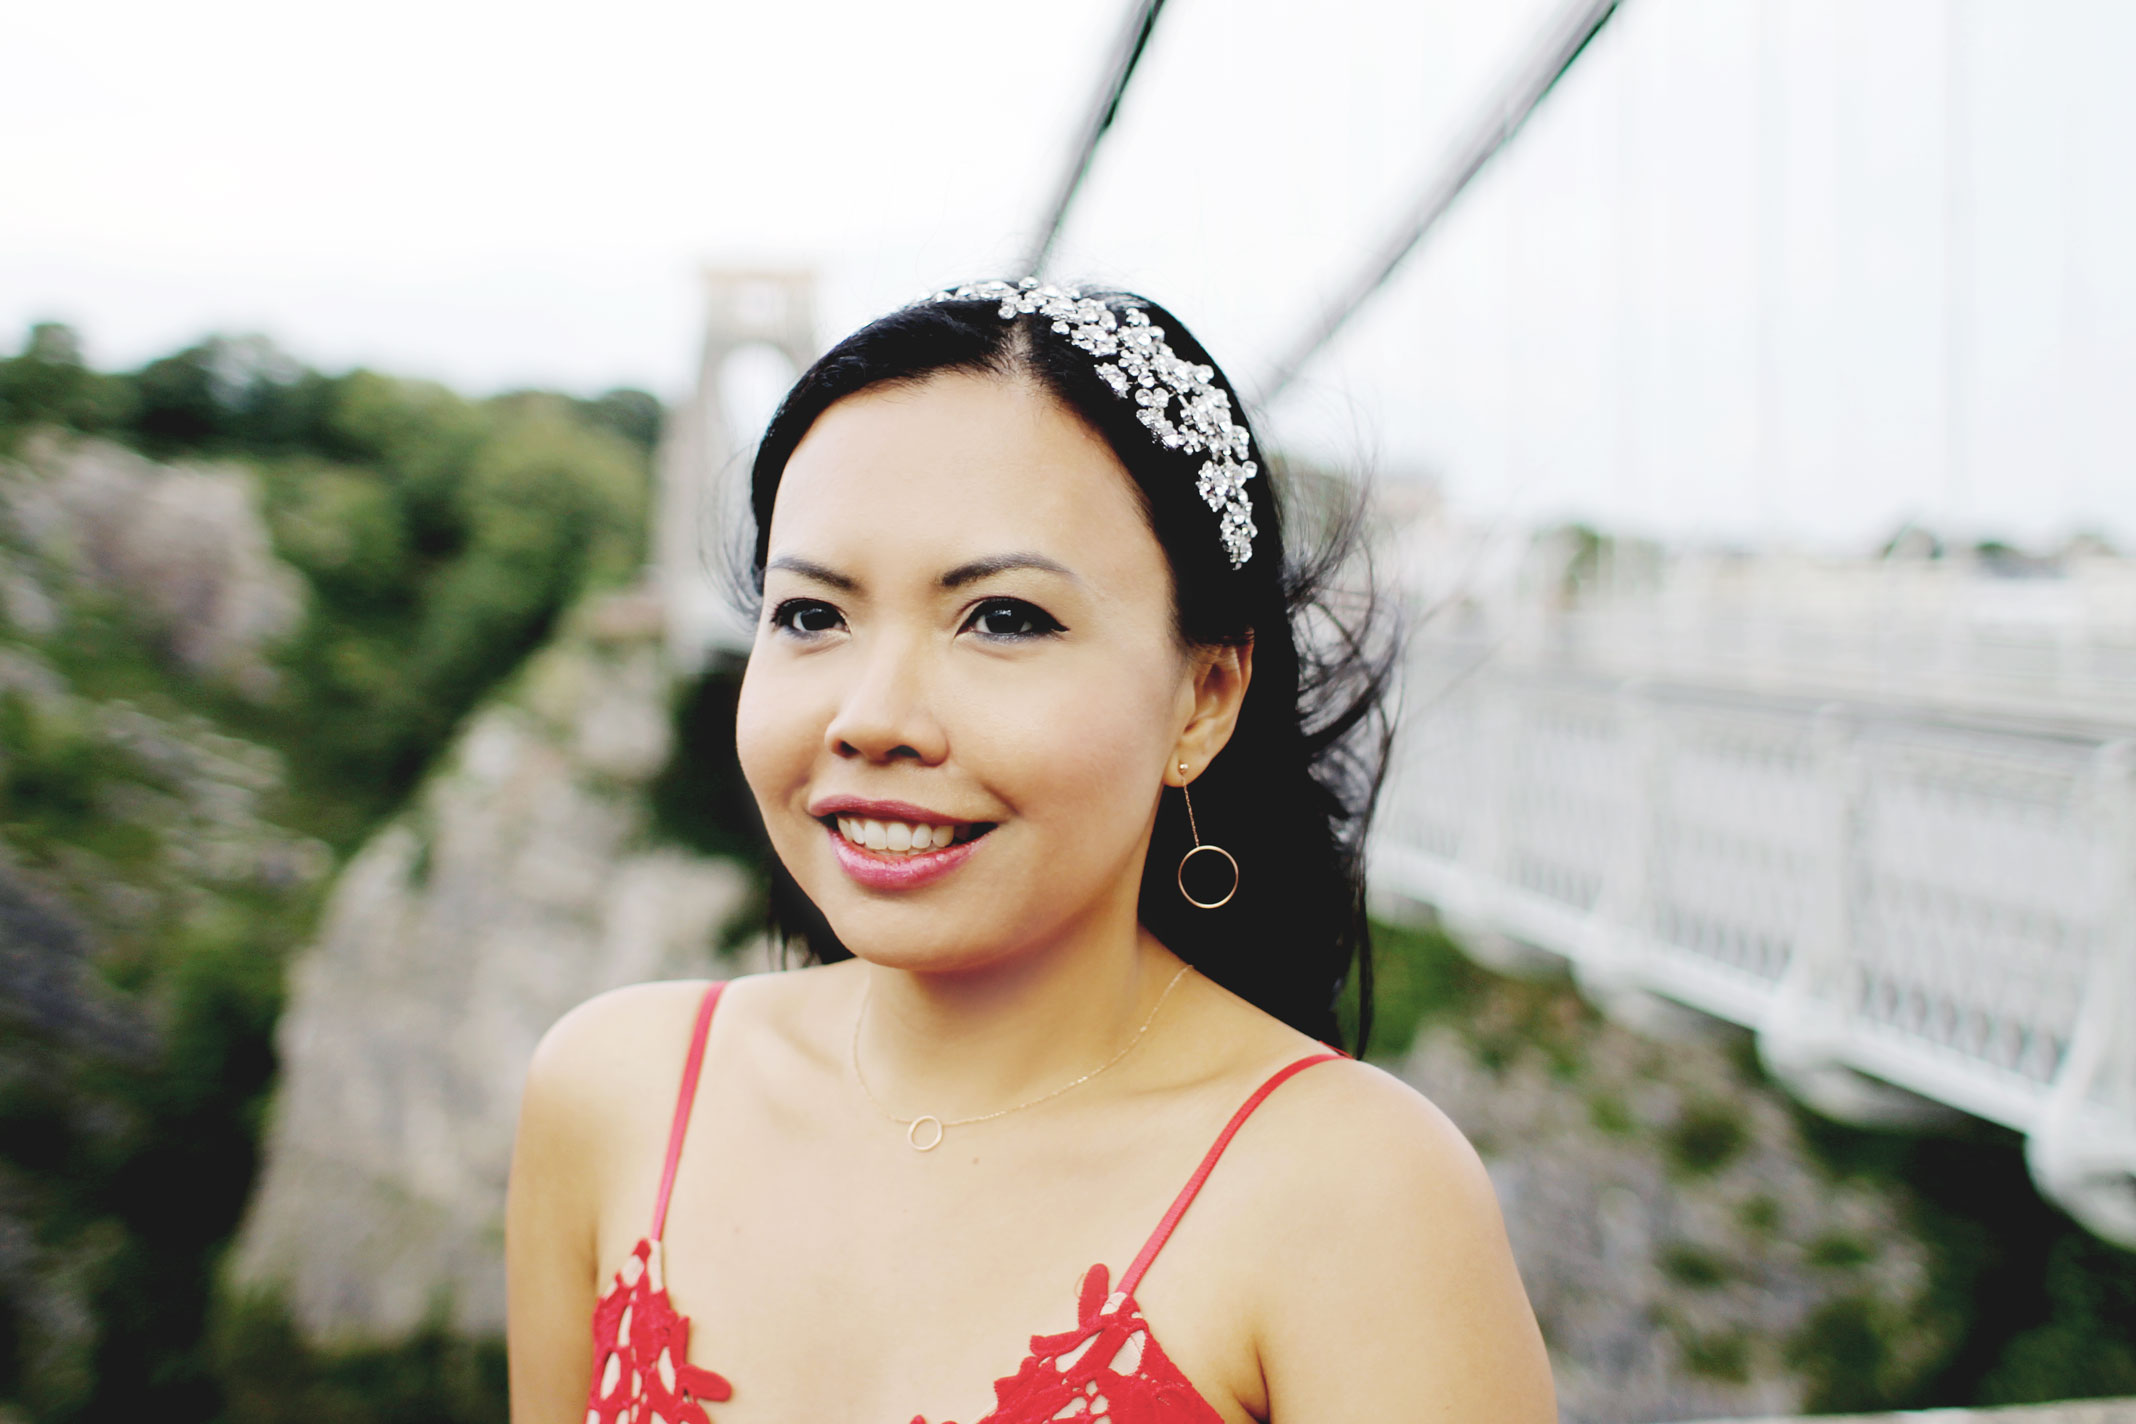 Styleat30 - Travel UK - Bristol - Clifton Suspension Bridge - Start a Blog - Party Dress - Zaful Promotion 01